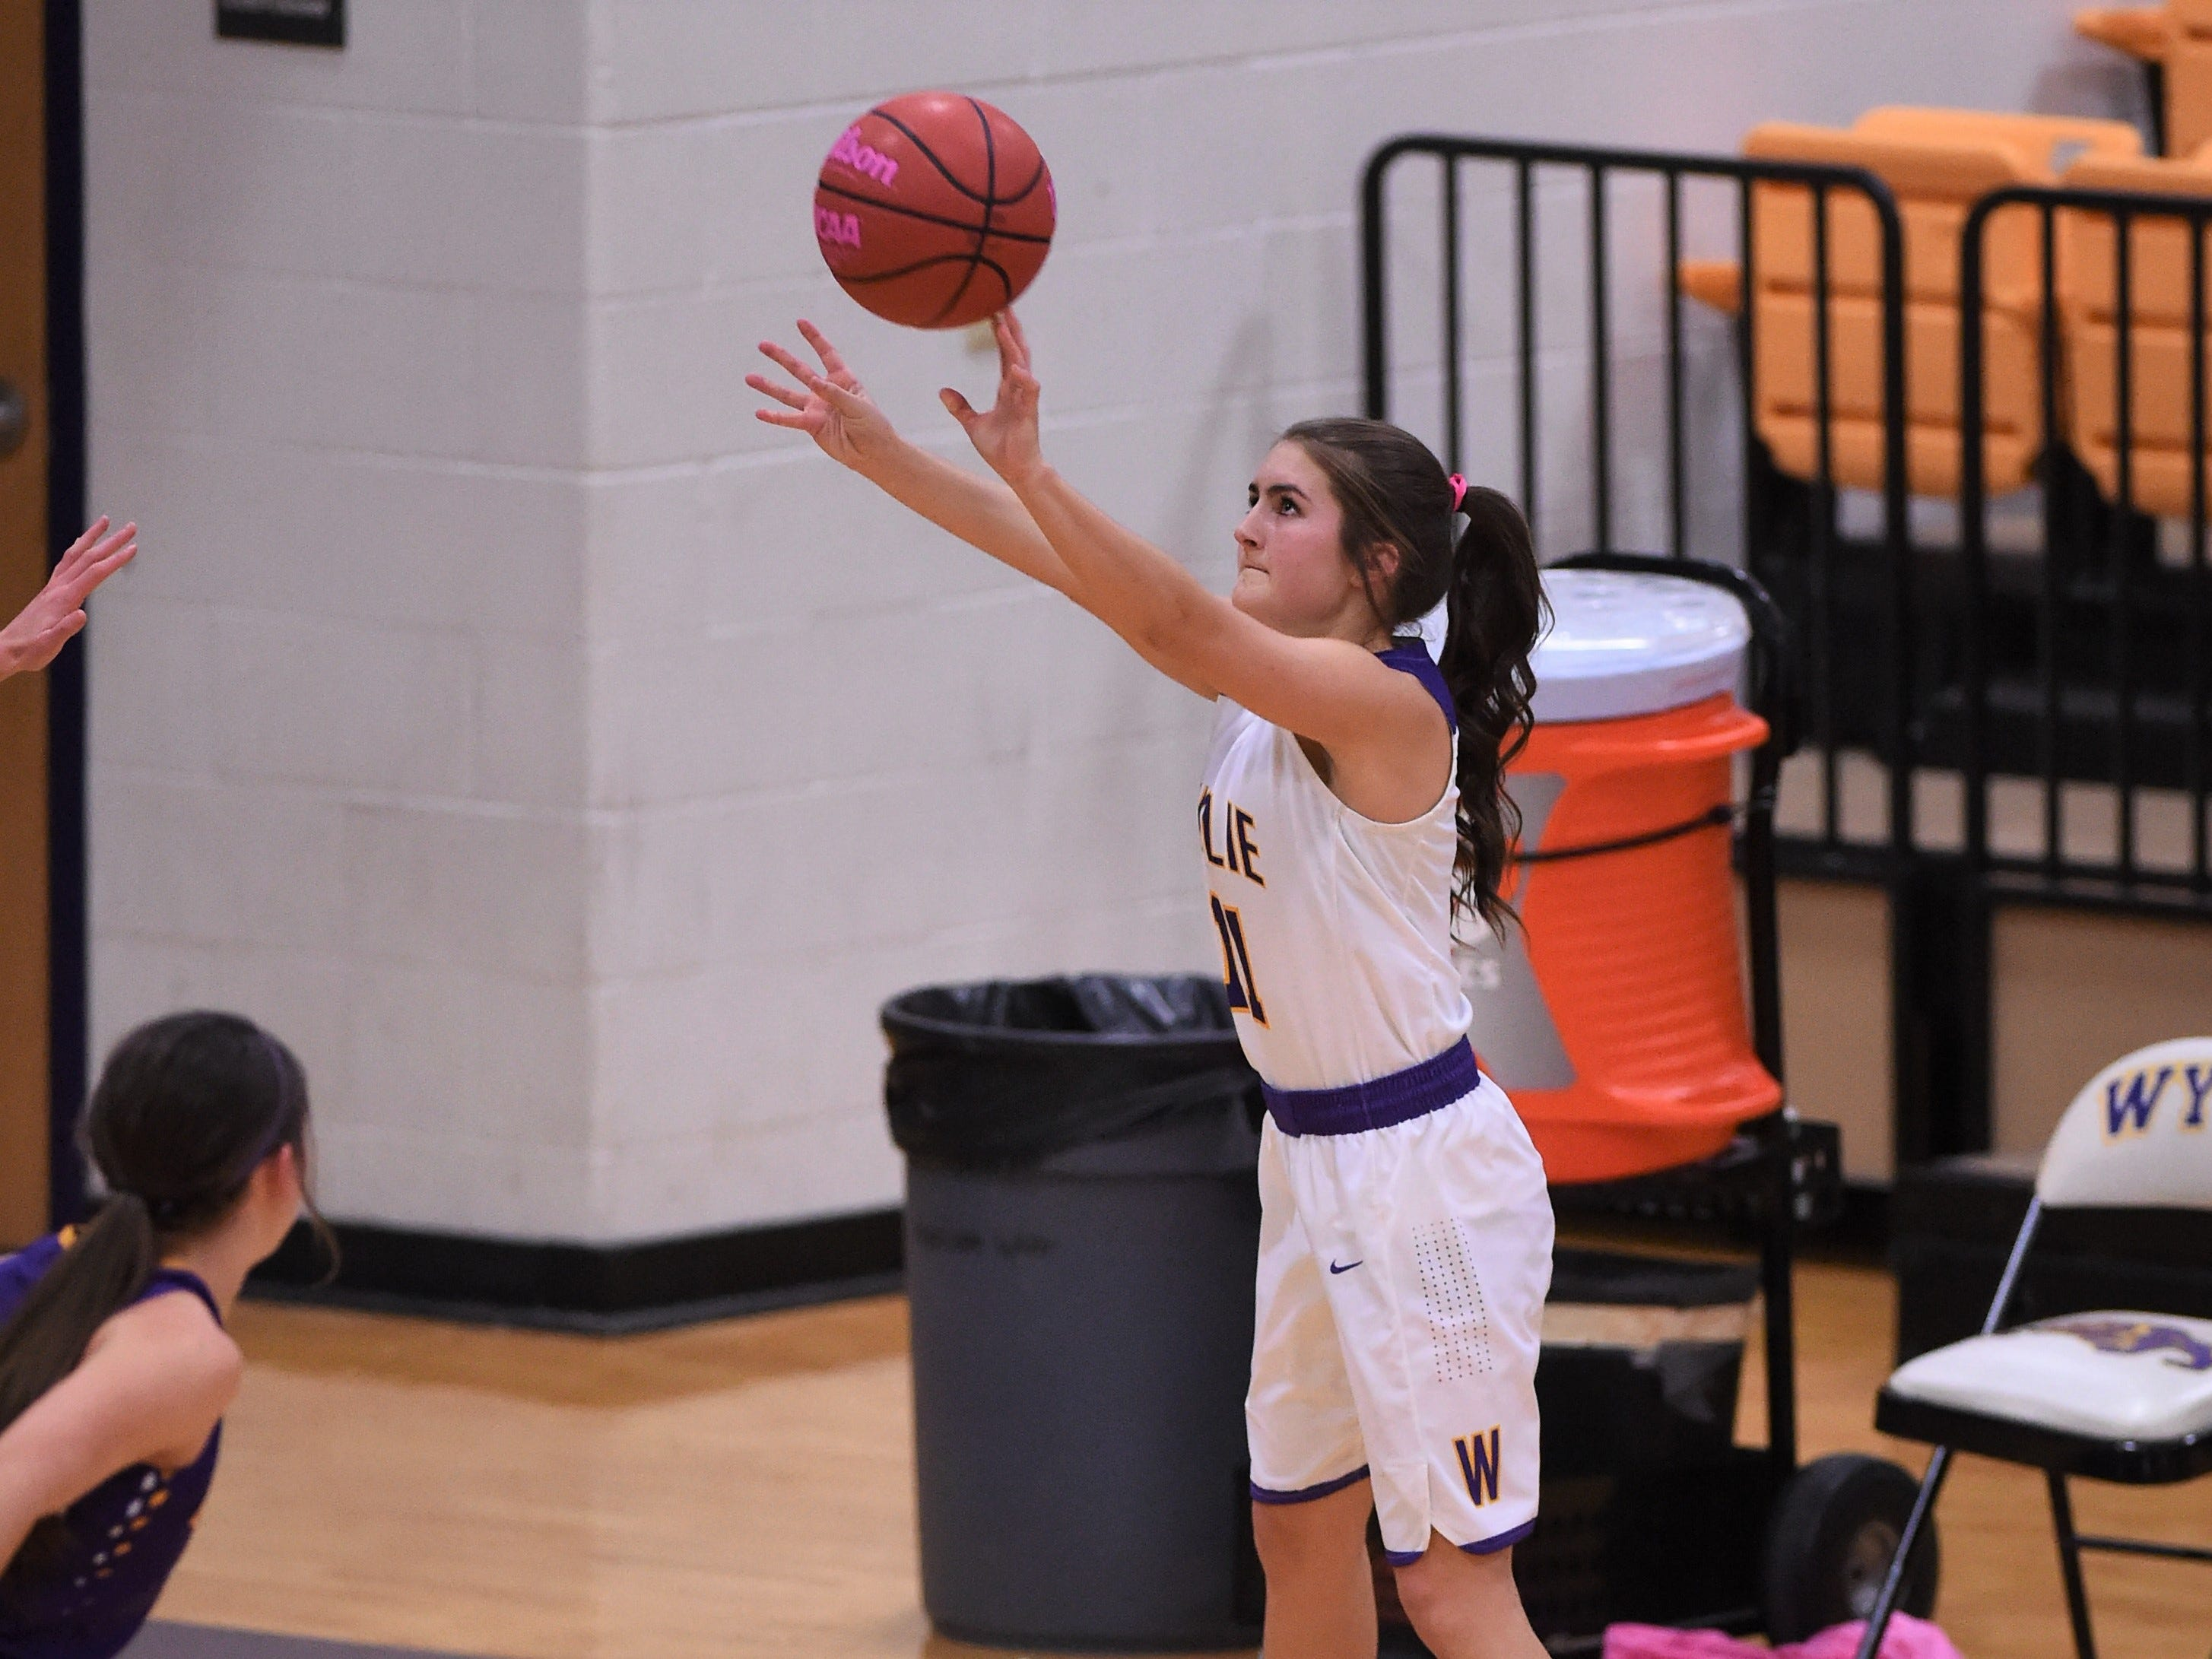 Wylie guard Madi Latham (11) takes a 3-point shot against Merkel in the Coaches vs. Cancer Pink Out game on Tuesday, Dec. 4, 2018. The Lady Bulldogs won 75-39.